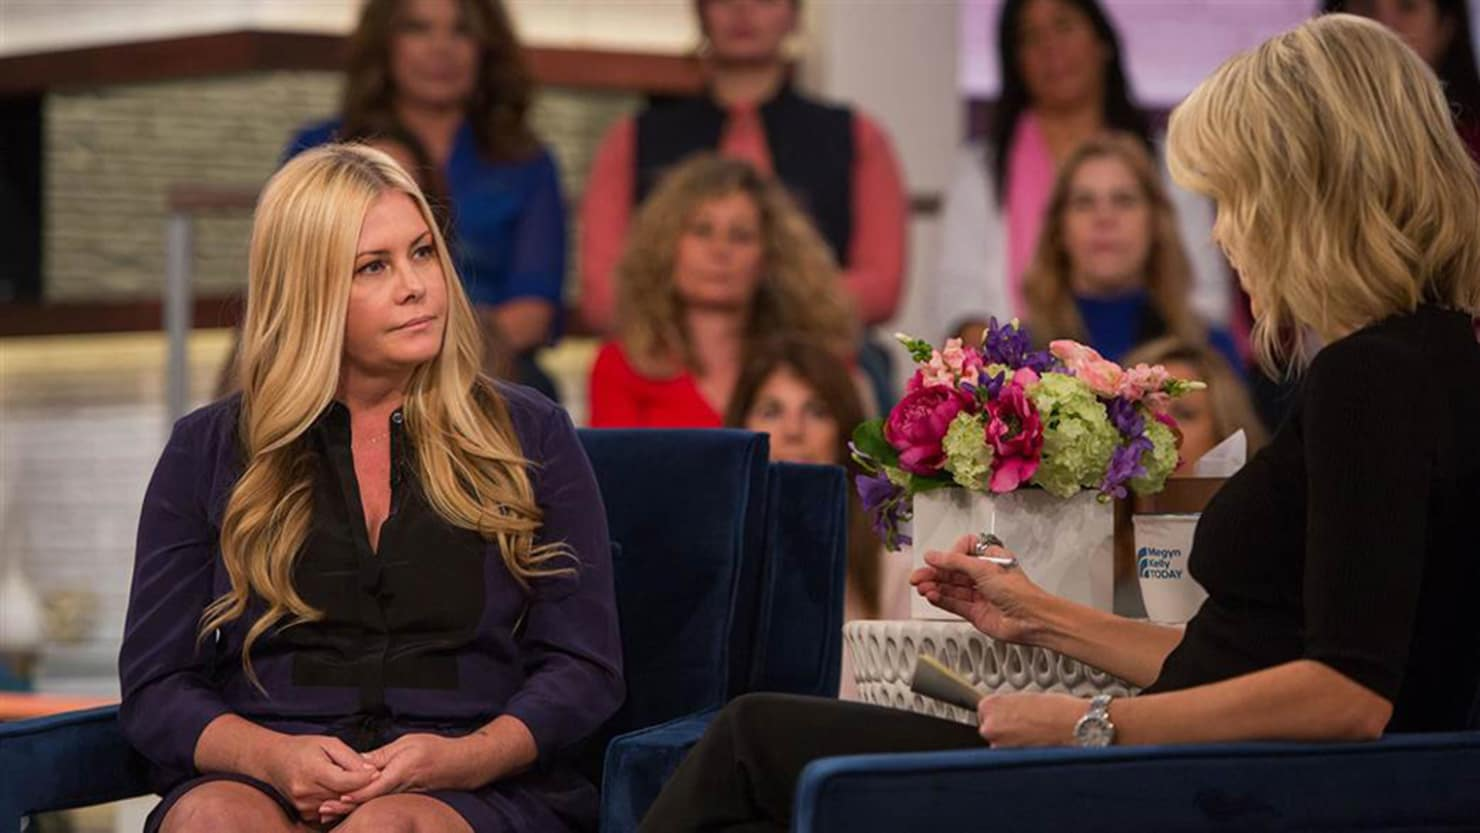 Summer Quinn Actress, Nicole Eggert Files Case against Actor, Scott Baio, Over Sexual Misconduct